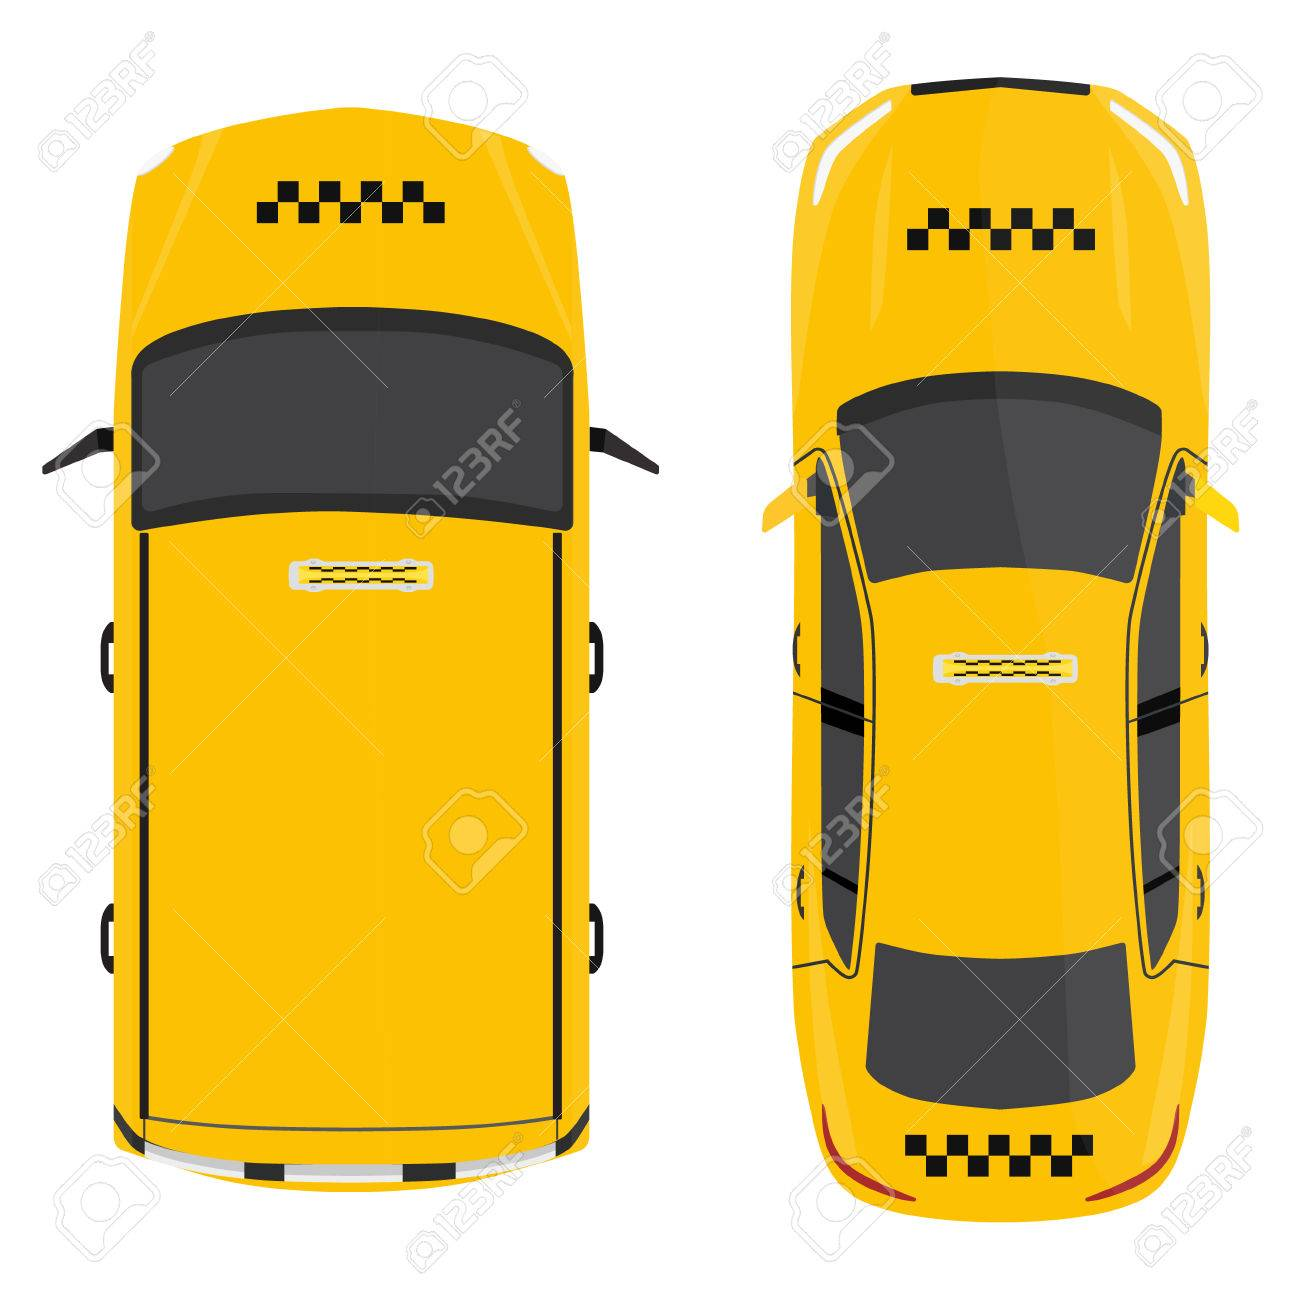 Vector illustration yellow taxi car top view  Public transportation